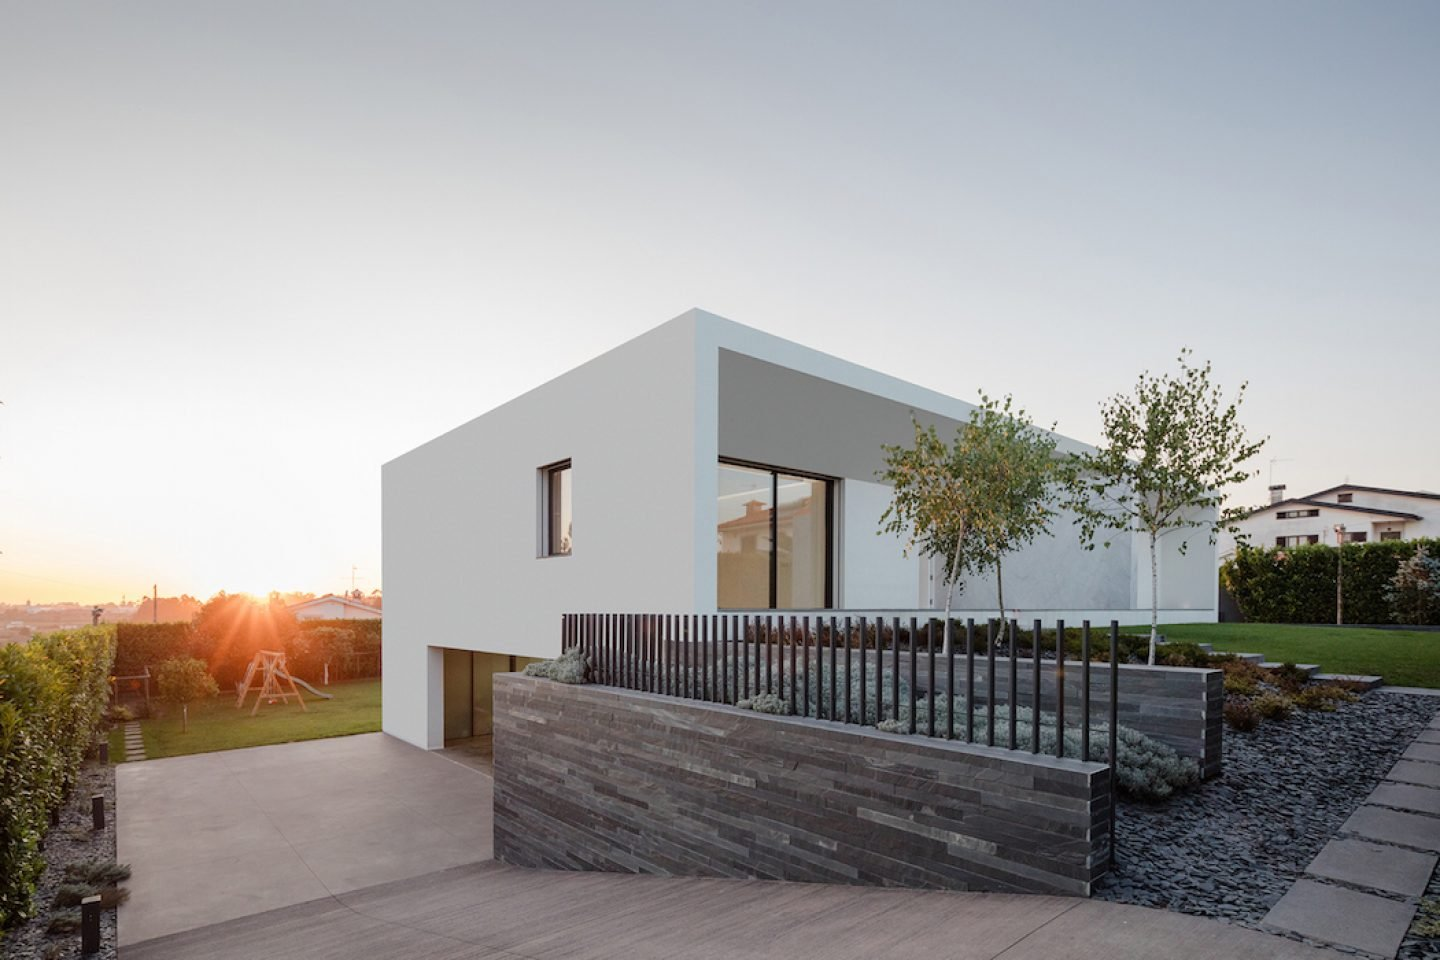 Vila do Conde House - Raulino Arquitecto (06)